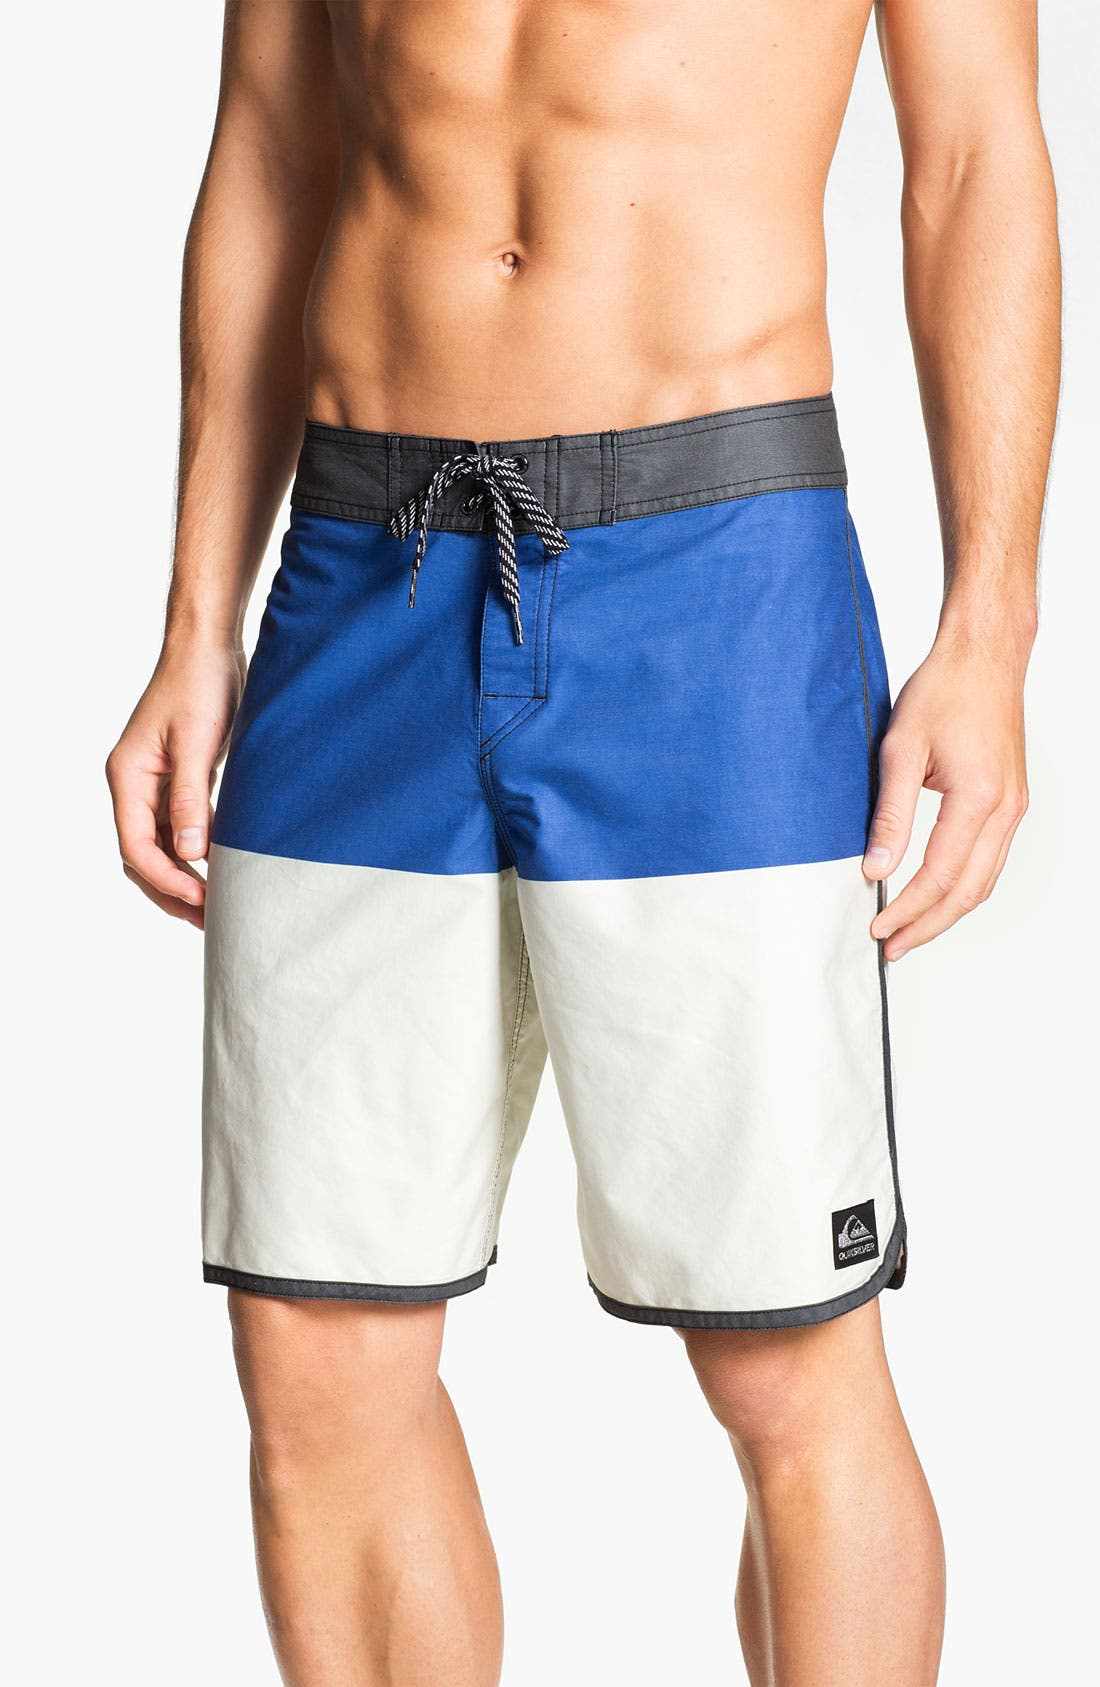 Alternate Image 1 Selected - Quiksilver 'Half and Half' Board Shorts